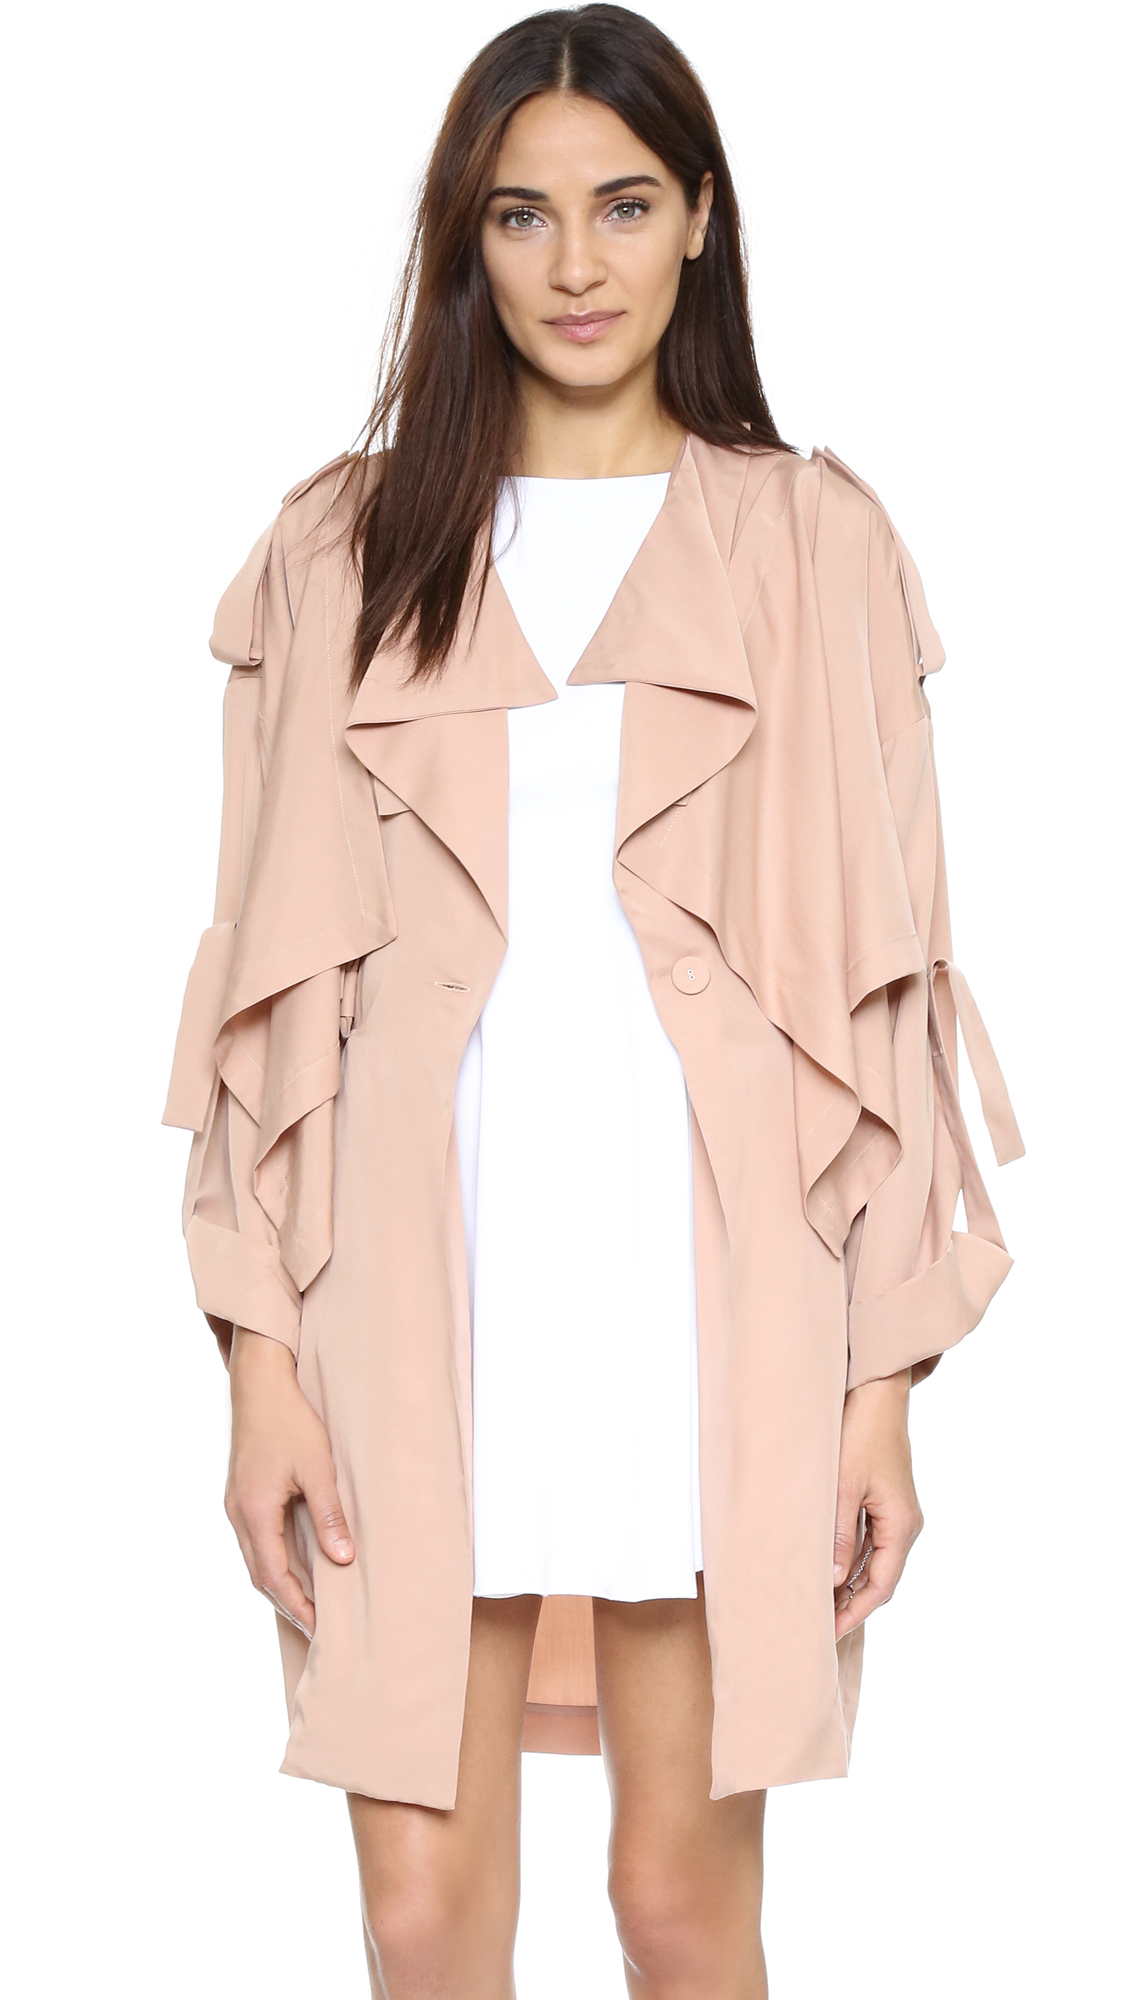 a45b5eb30176 KENDALL + KYLIE Lightweight Trench Coat